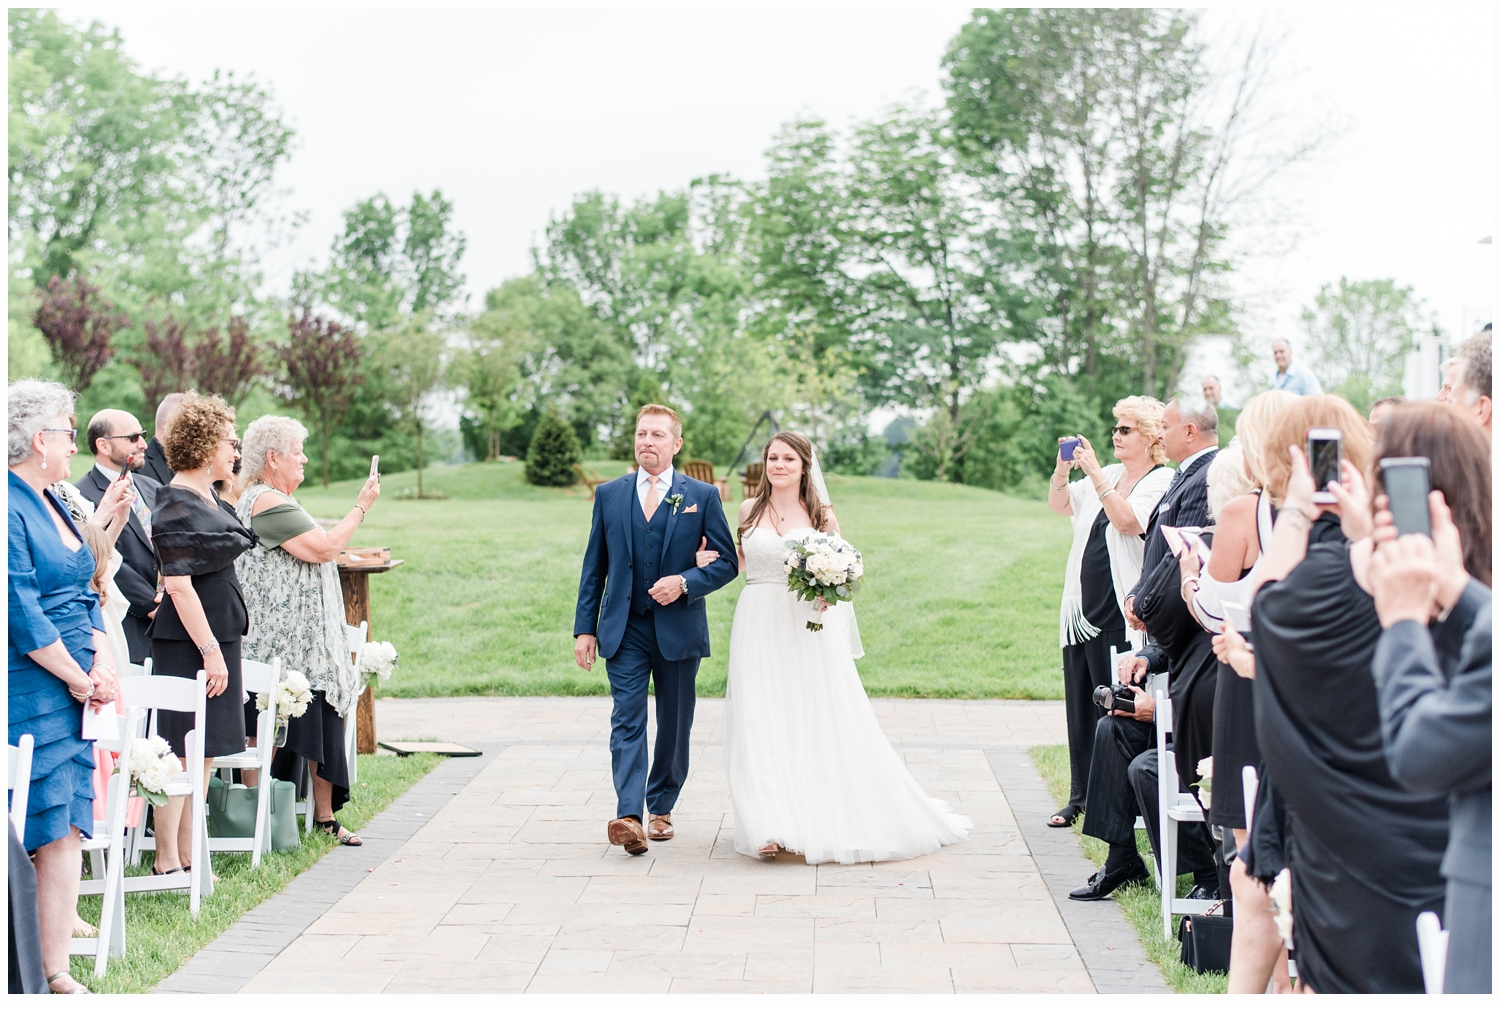 bride and father walking down aisle at wedding